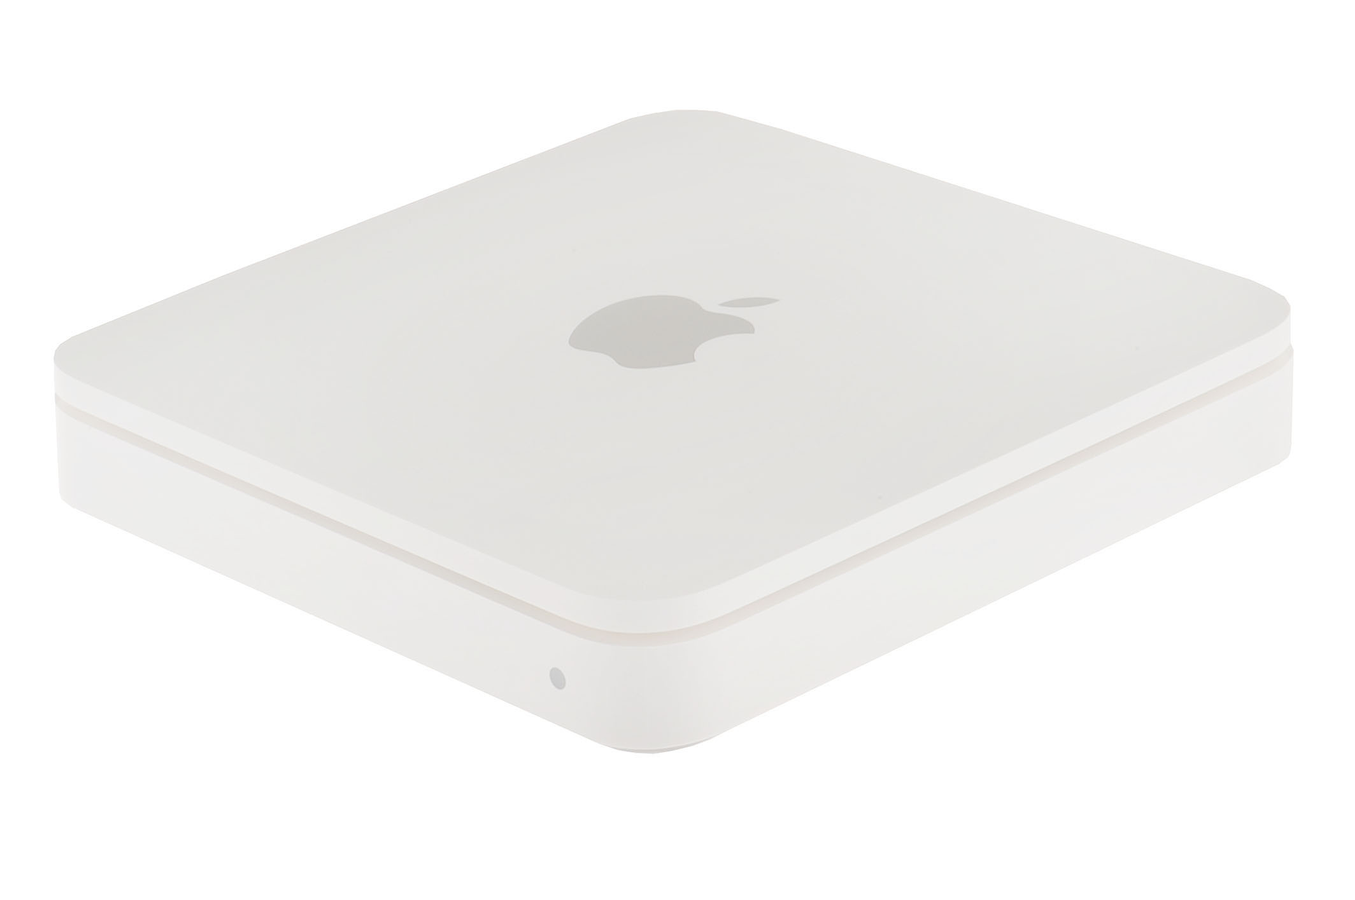 disque dur externe apple time capsule 2 to ethernet wifi timecapsule 2to mc344z a 1232975